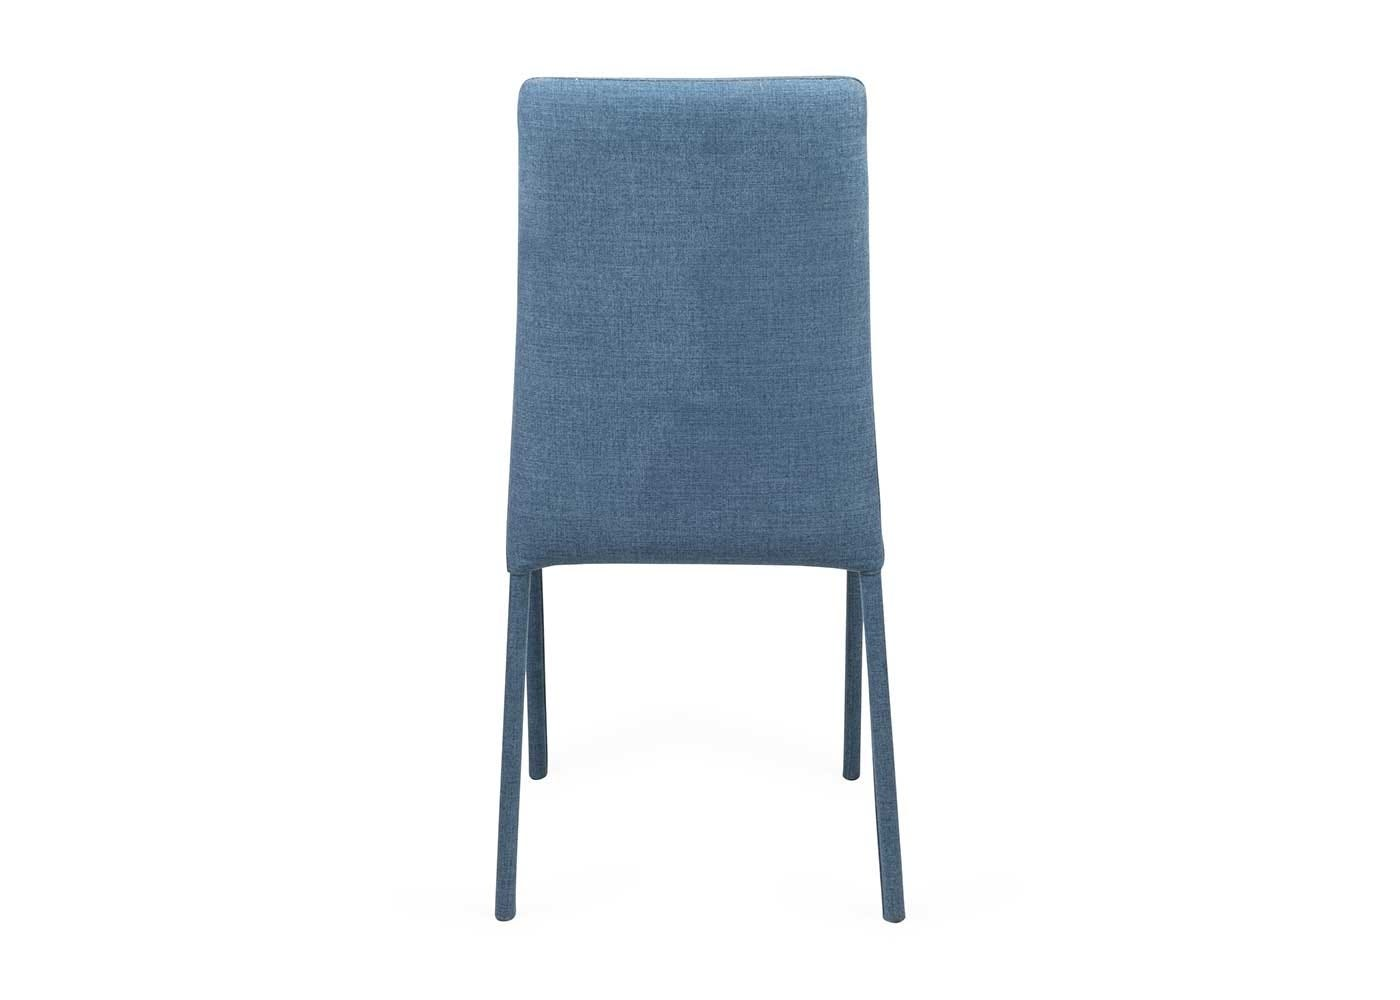 Bronte chair in moda cobalt fabric back view.  sc 1 st  Healu0027s & Bronte Pair of Dining Chairs